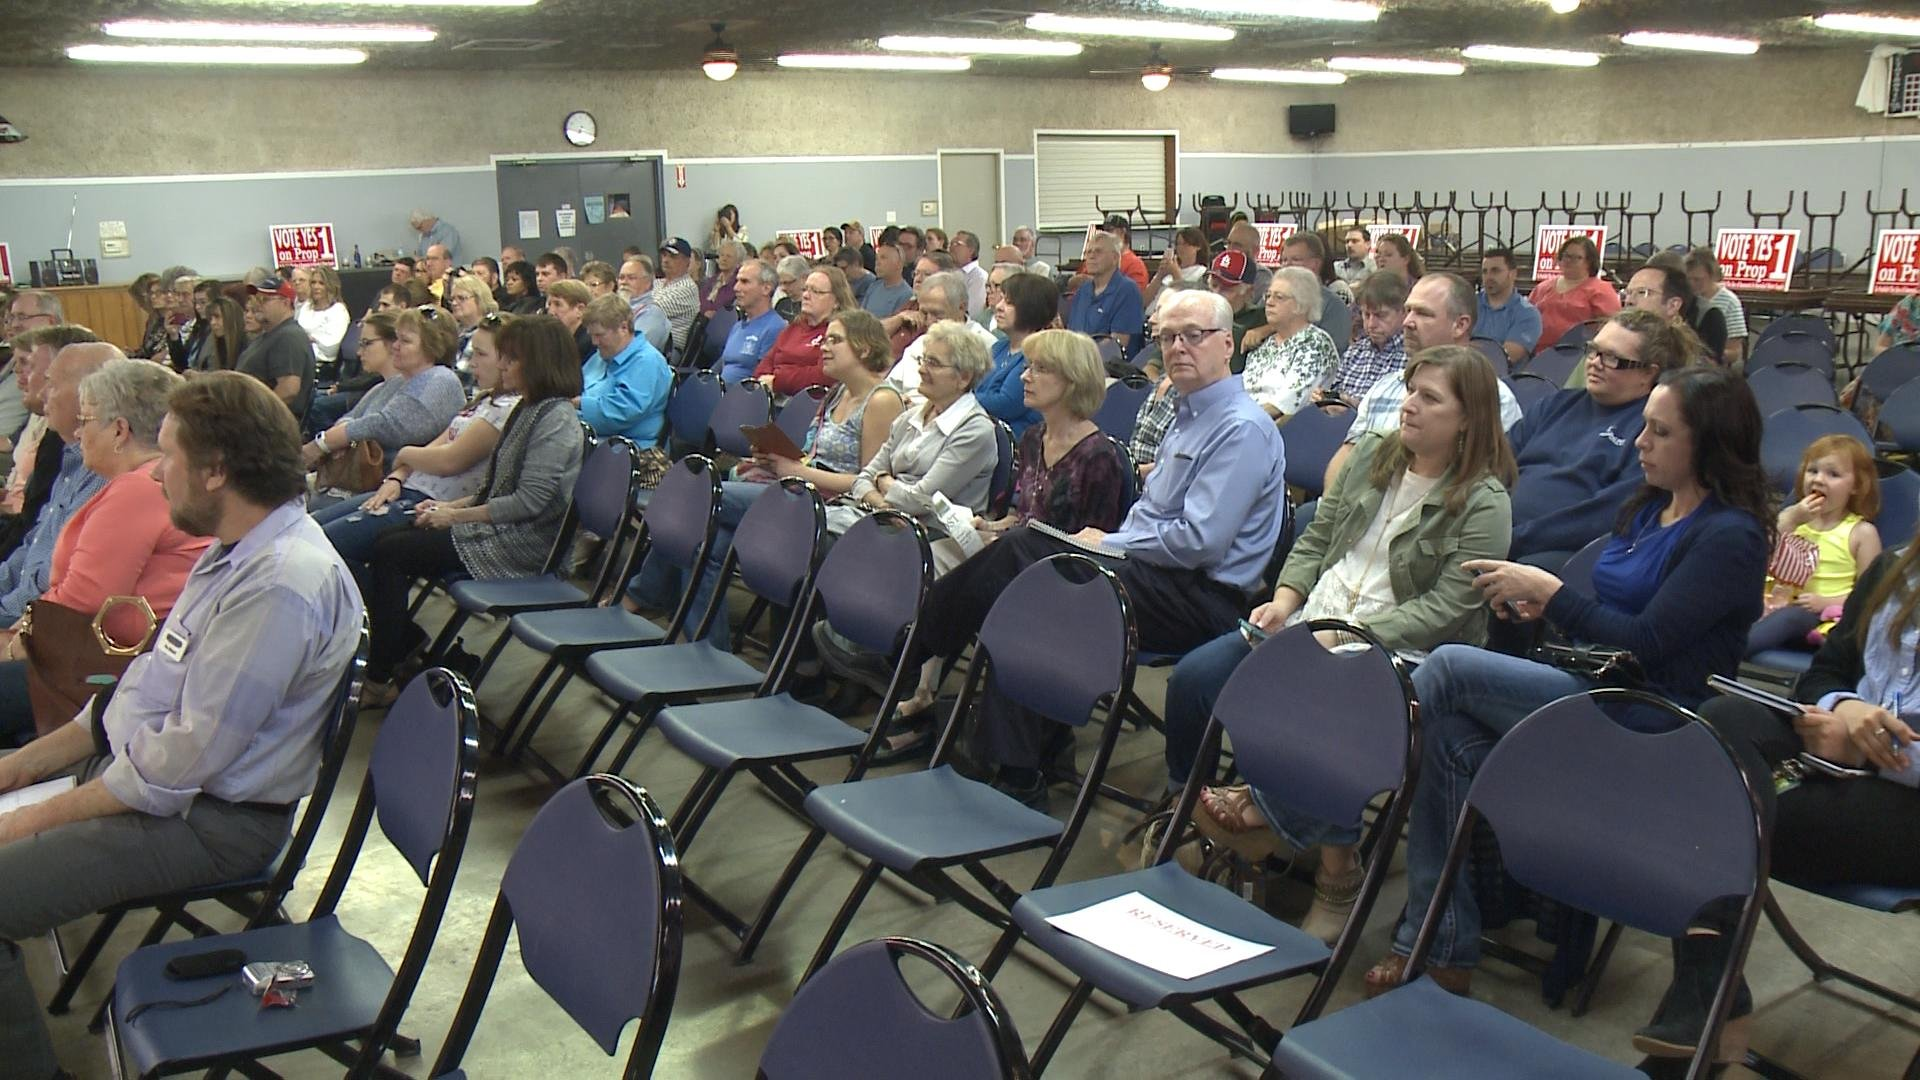 More than 100 people listened to Brockovich Monday night at the American Legion hall in Hannibal.